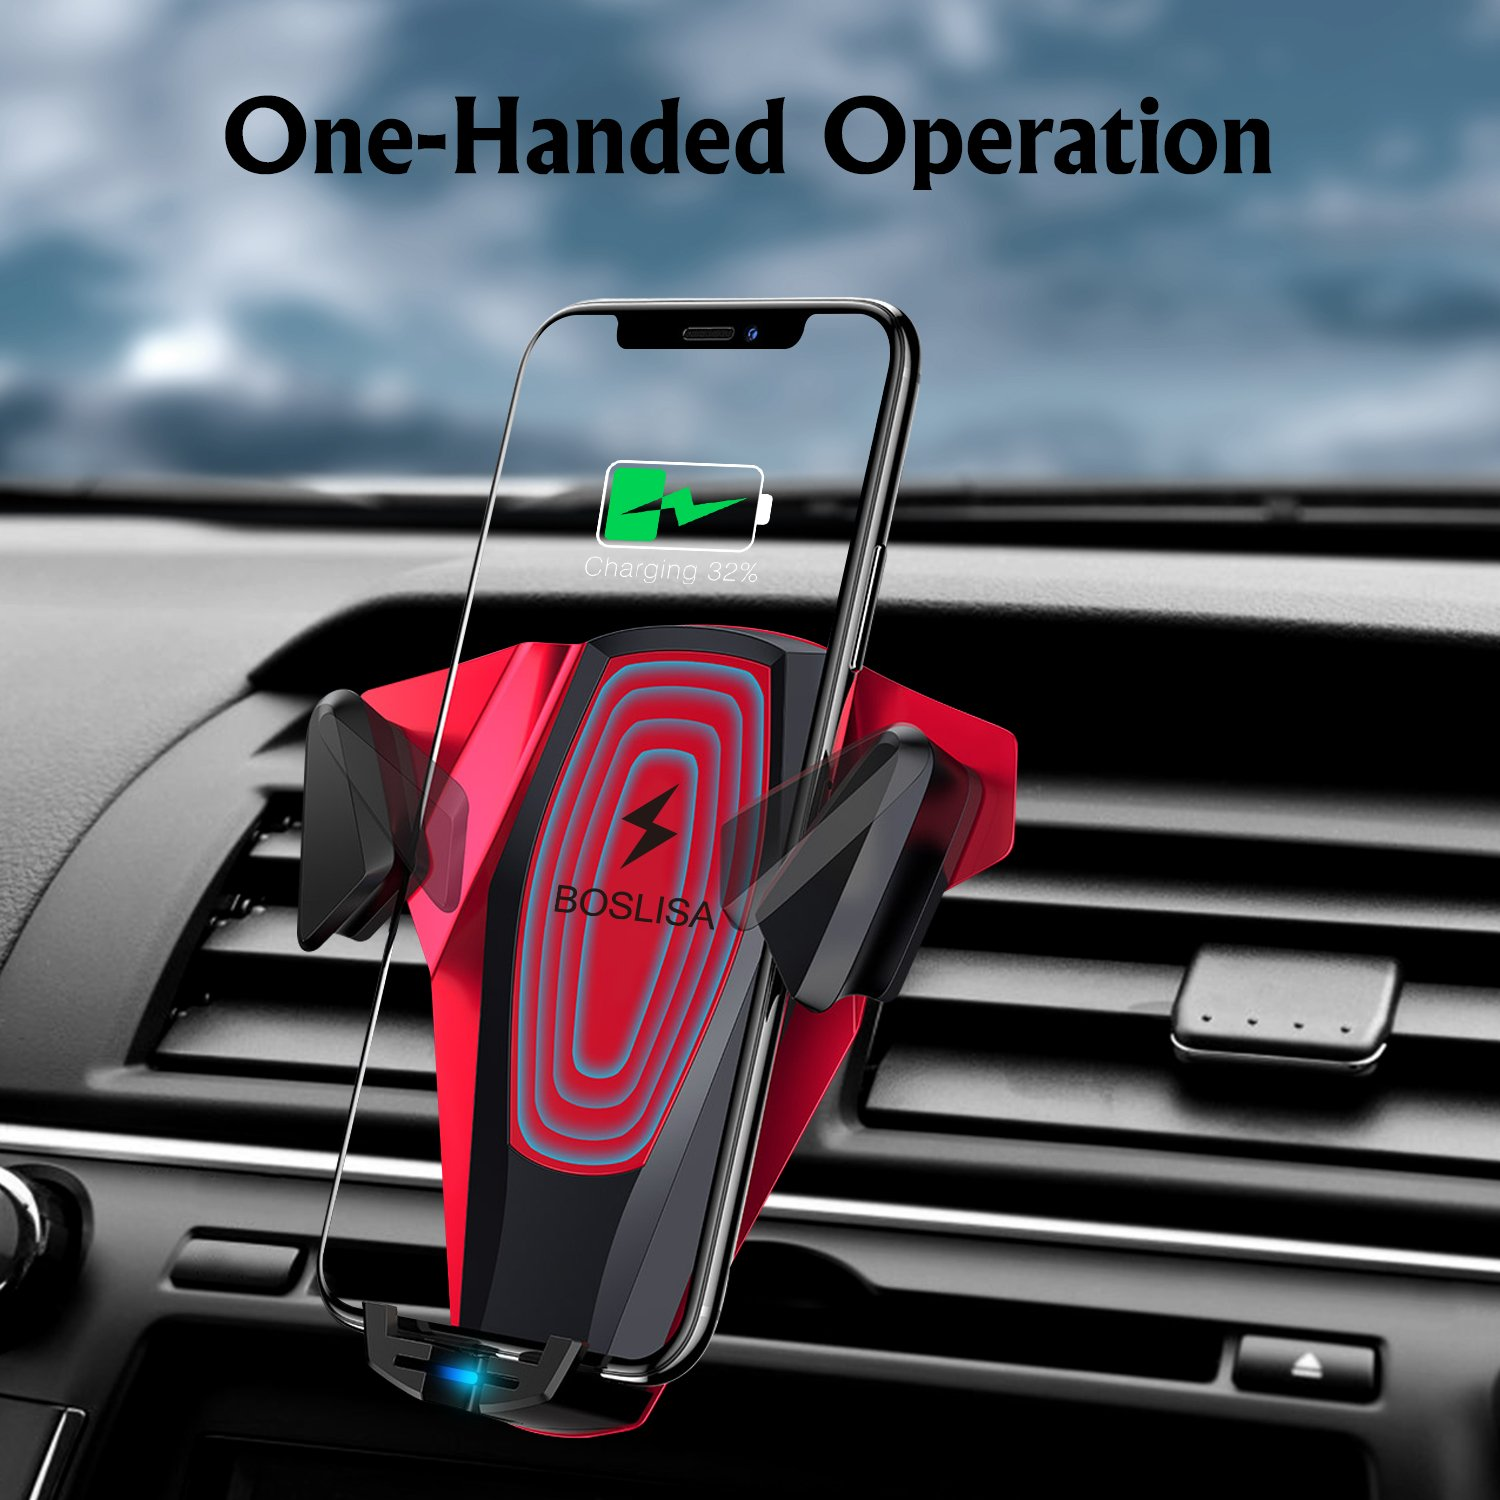 Wireless Car Charger, BOSLISA X-Man Wireless Charger Car Mount, Air Vent Phone Holder, QC3.0 Fast Charging Compatible for iPhoneX/8/8 Plus/Samsung Galaxy S9/8/7/Note 8 and More Qi Phones (Red) by BOSLISA (Image #2)